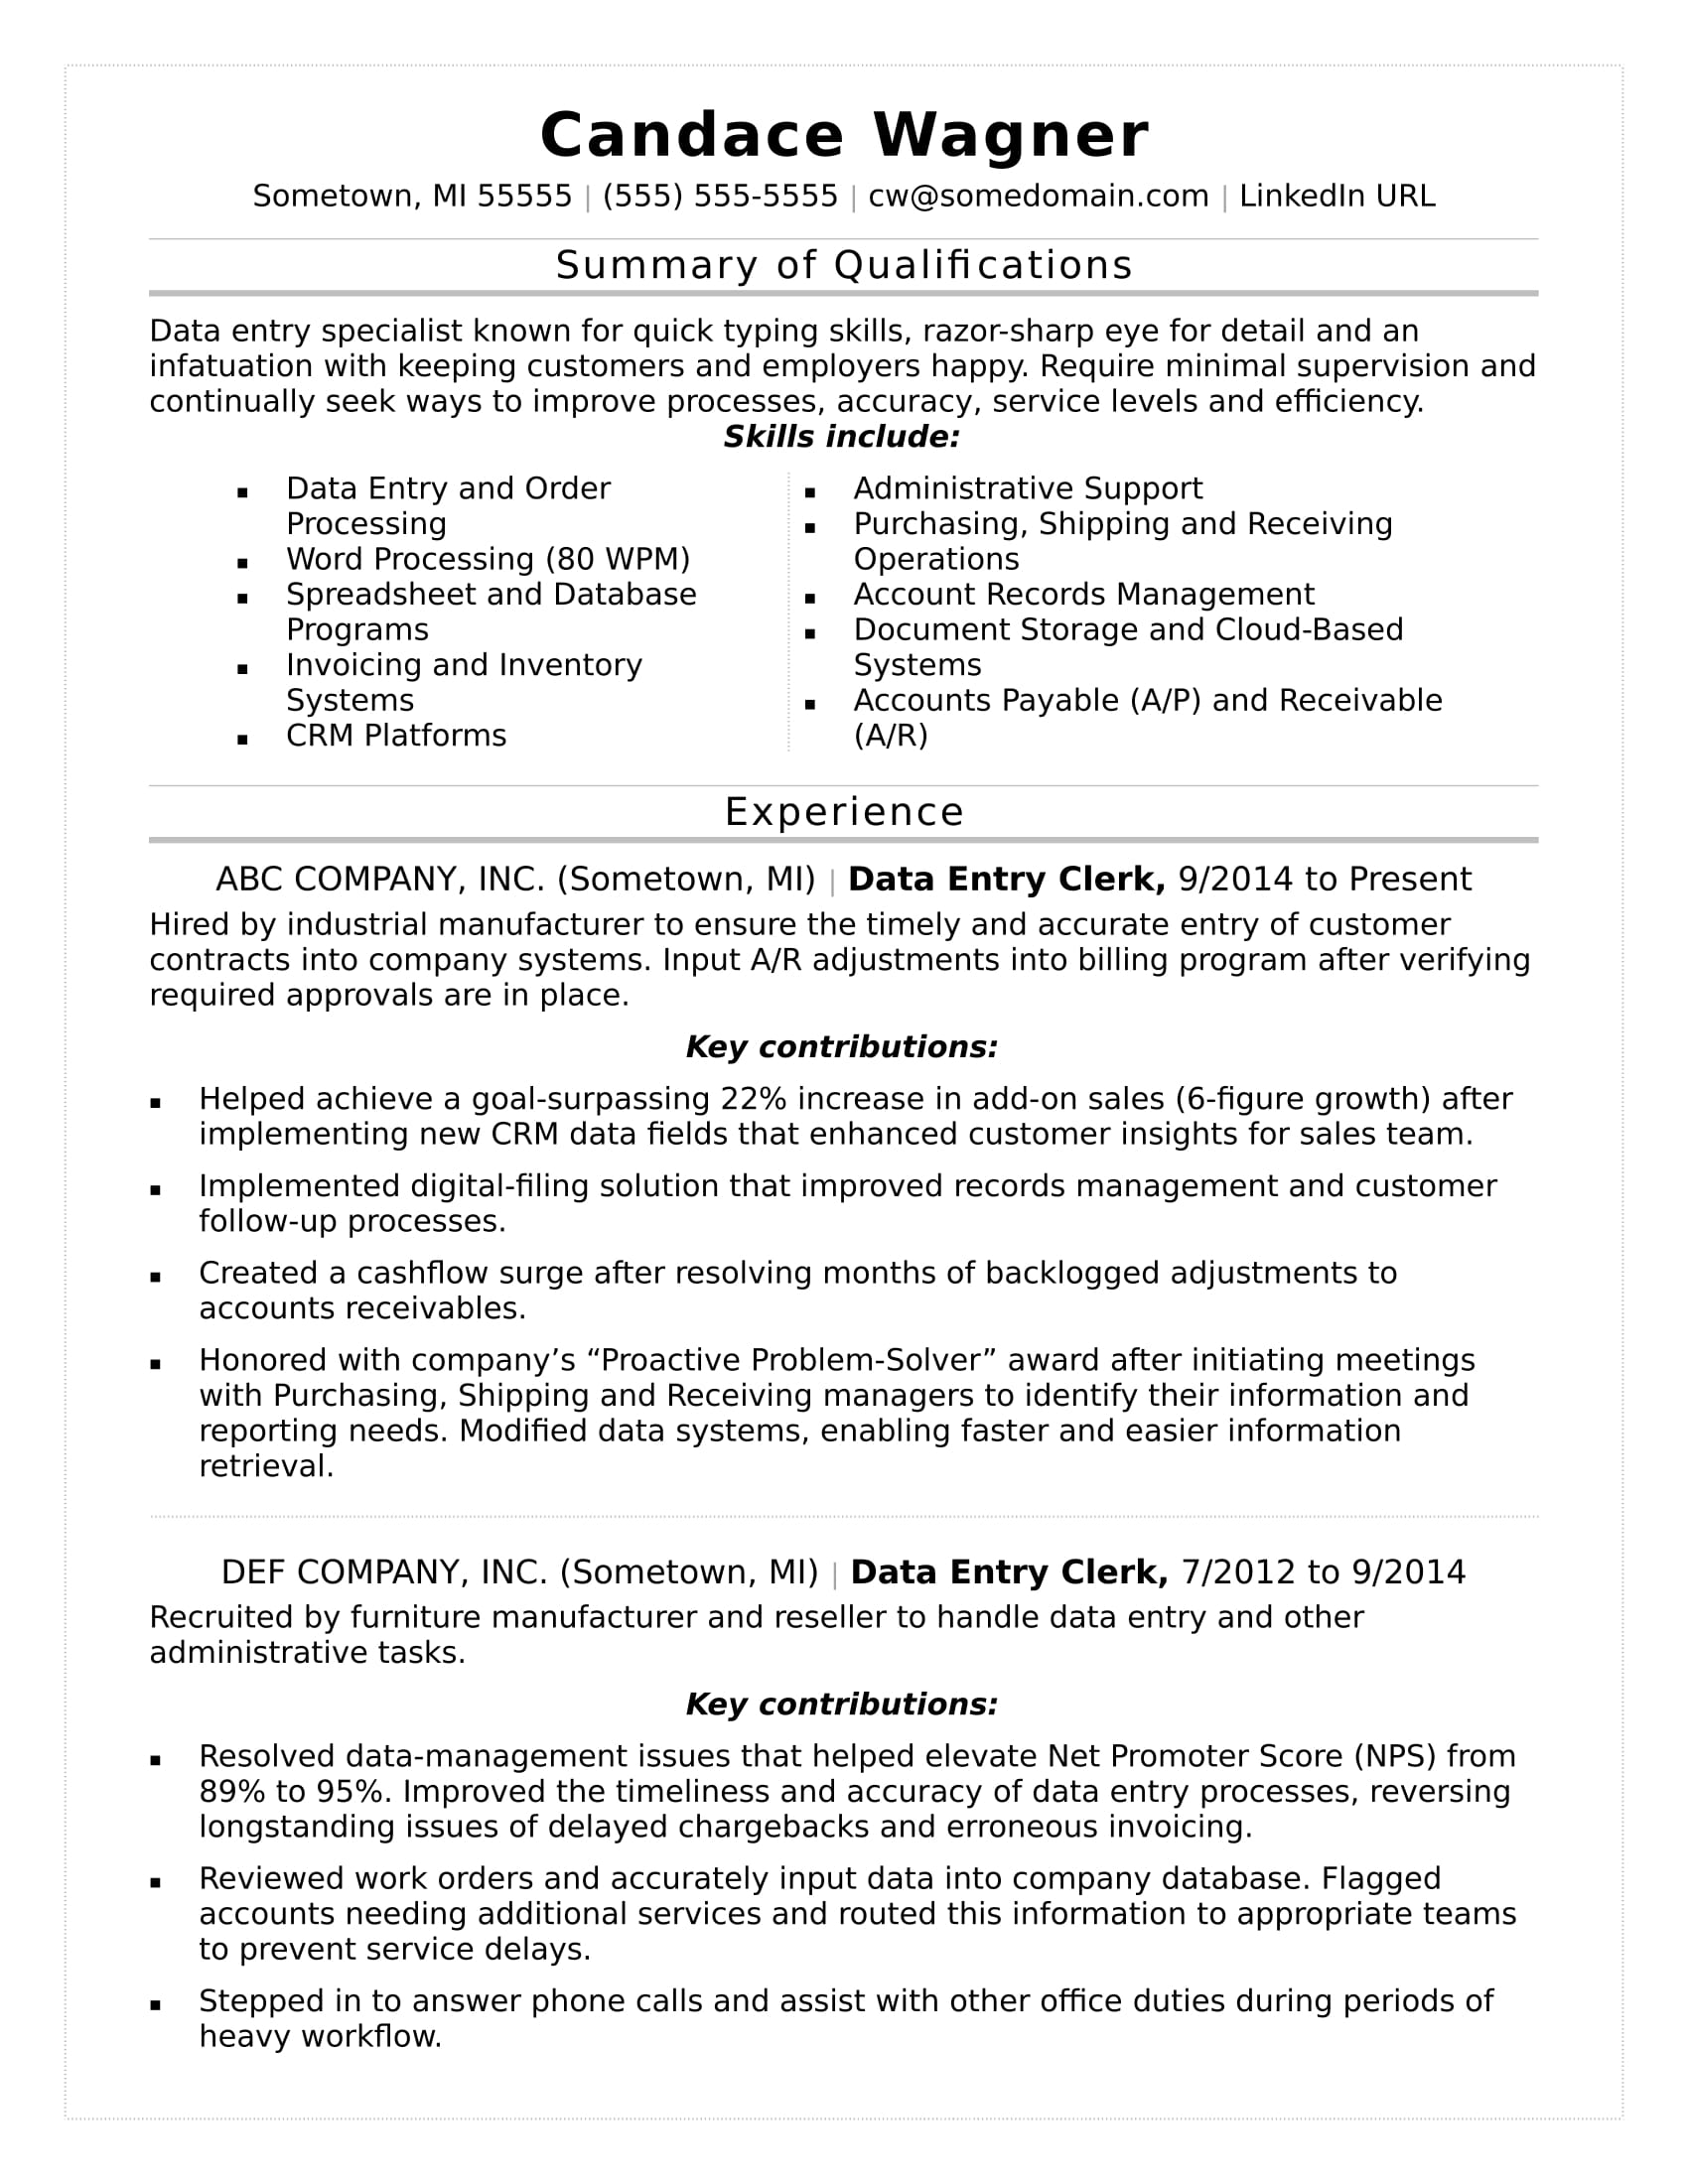 resume Sample Resume For Data Entry Clerk data entry resume sample monster com sample